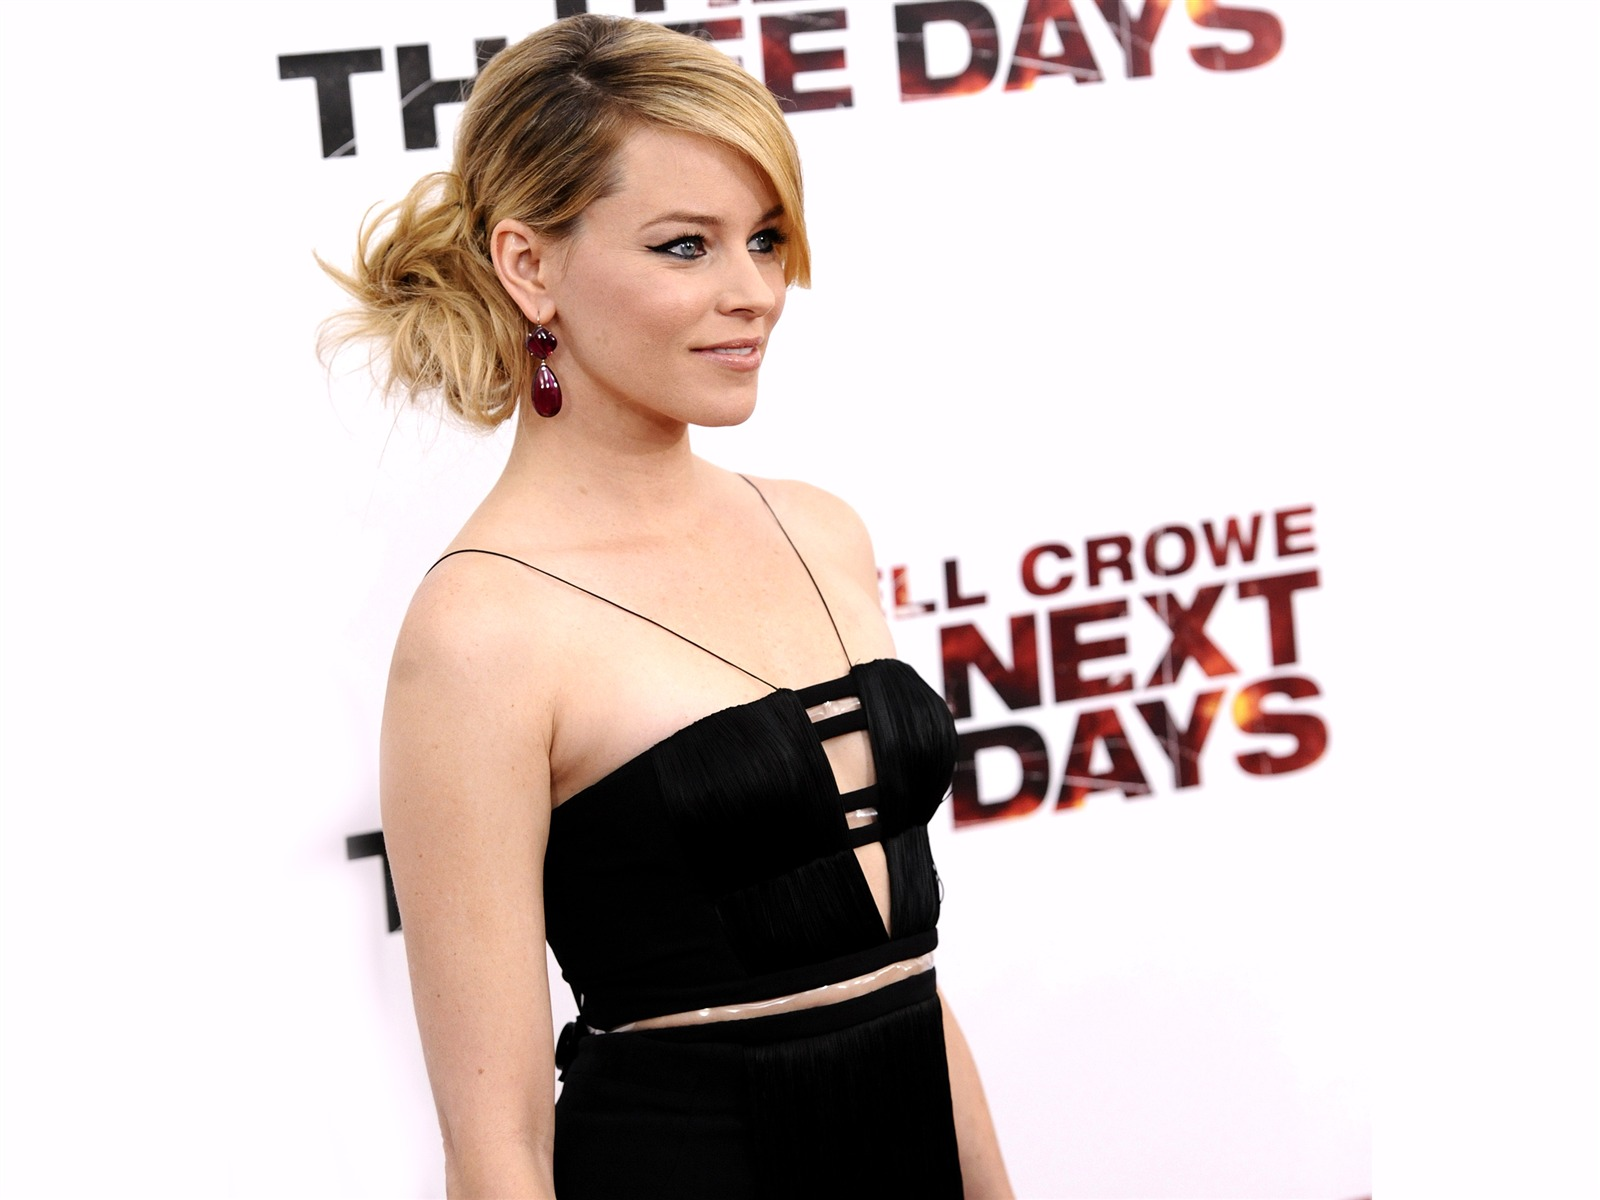 Elizabeth Banks #002 - 1600x1200 Wallpapers Pictures Photos Images